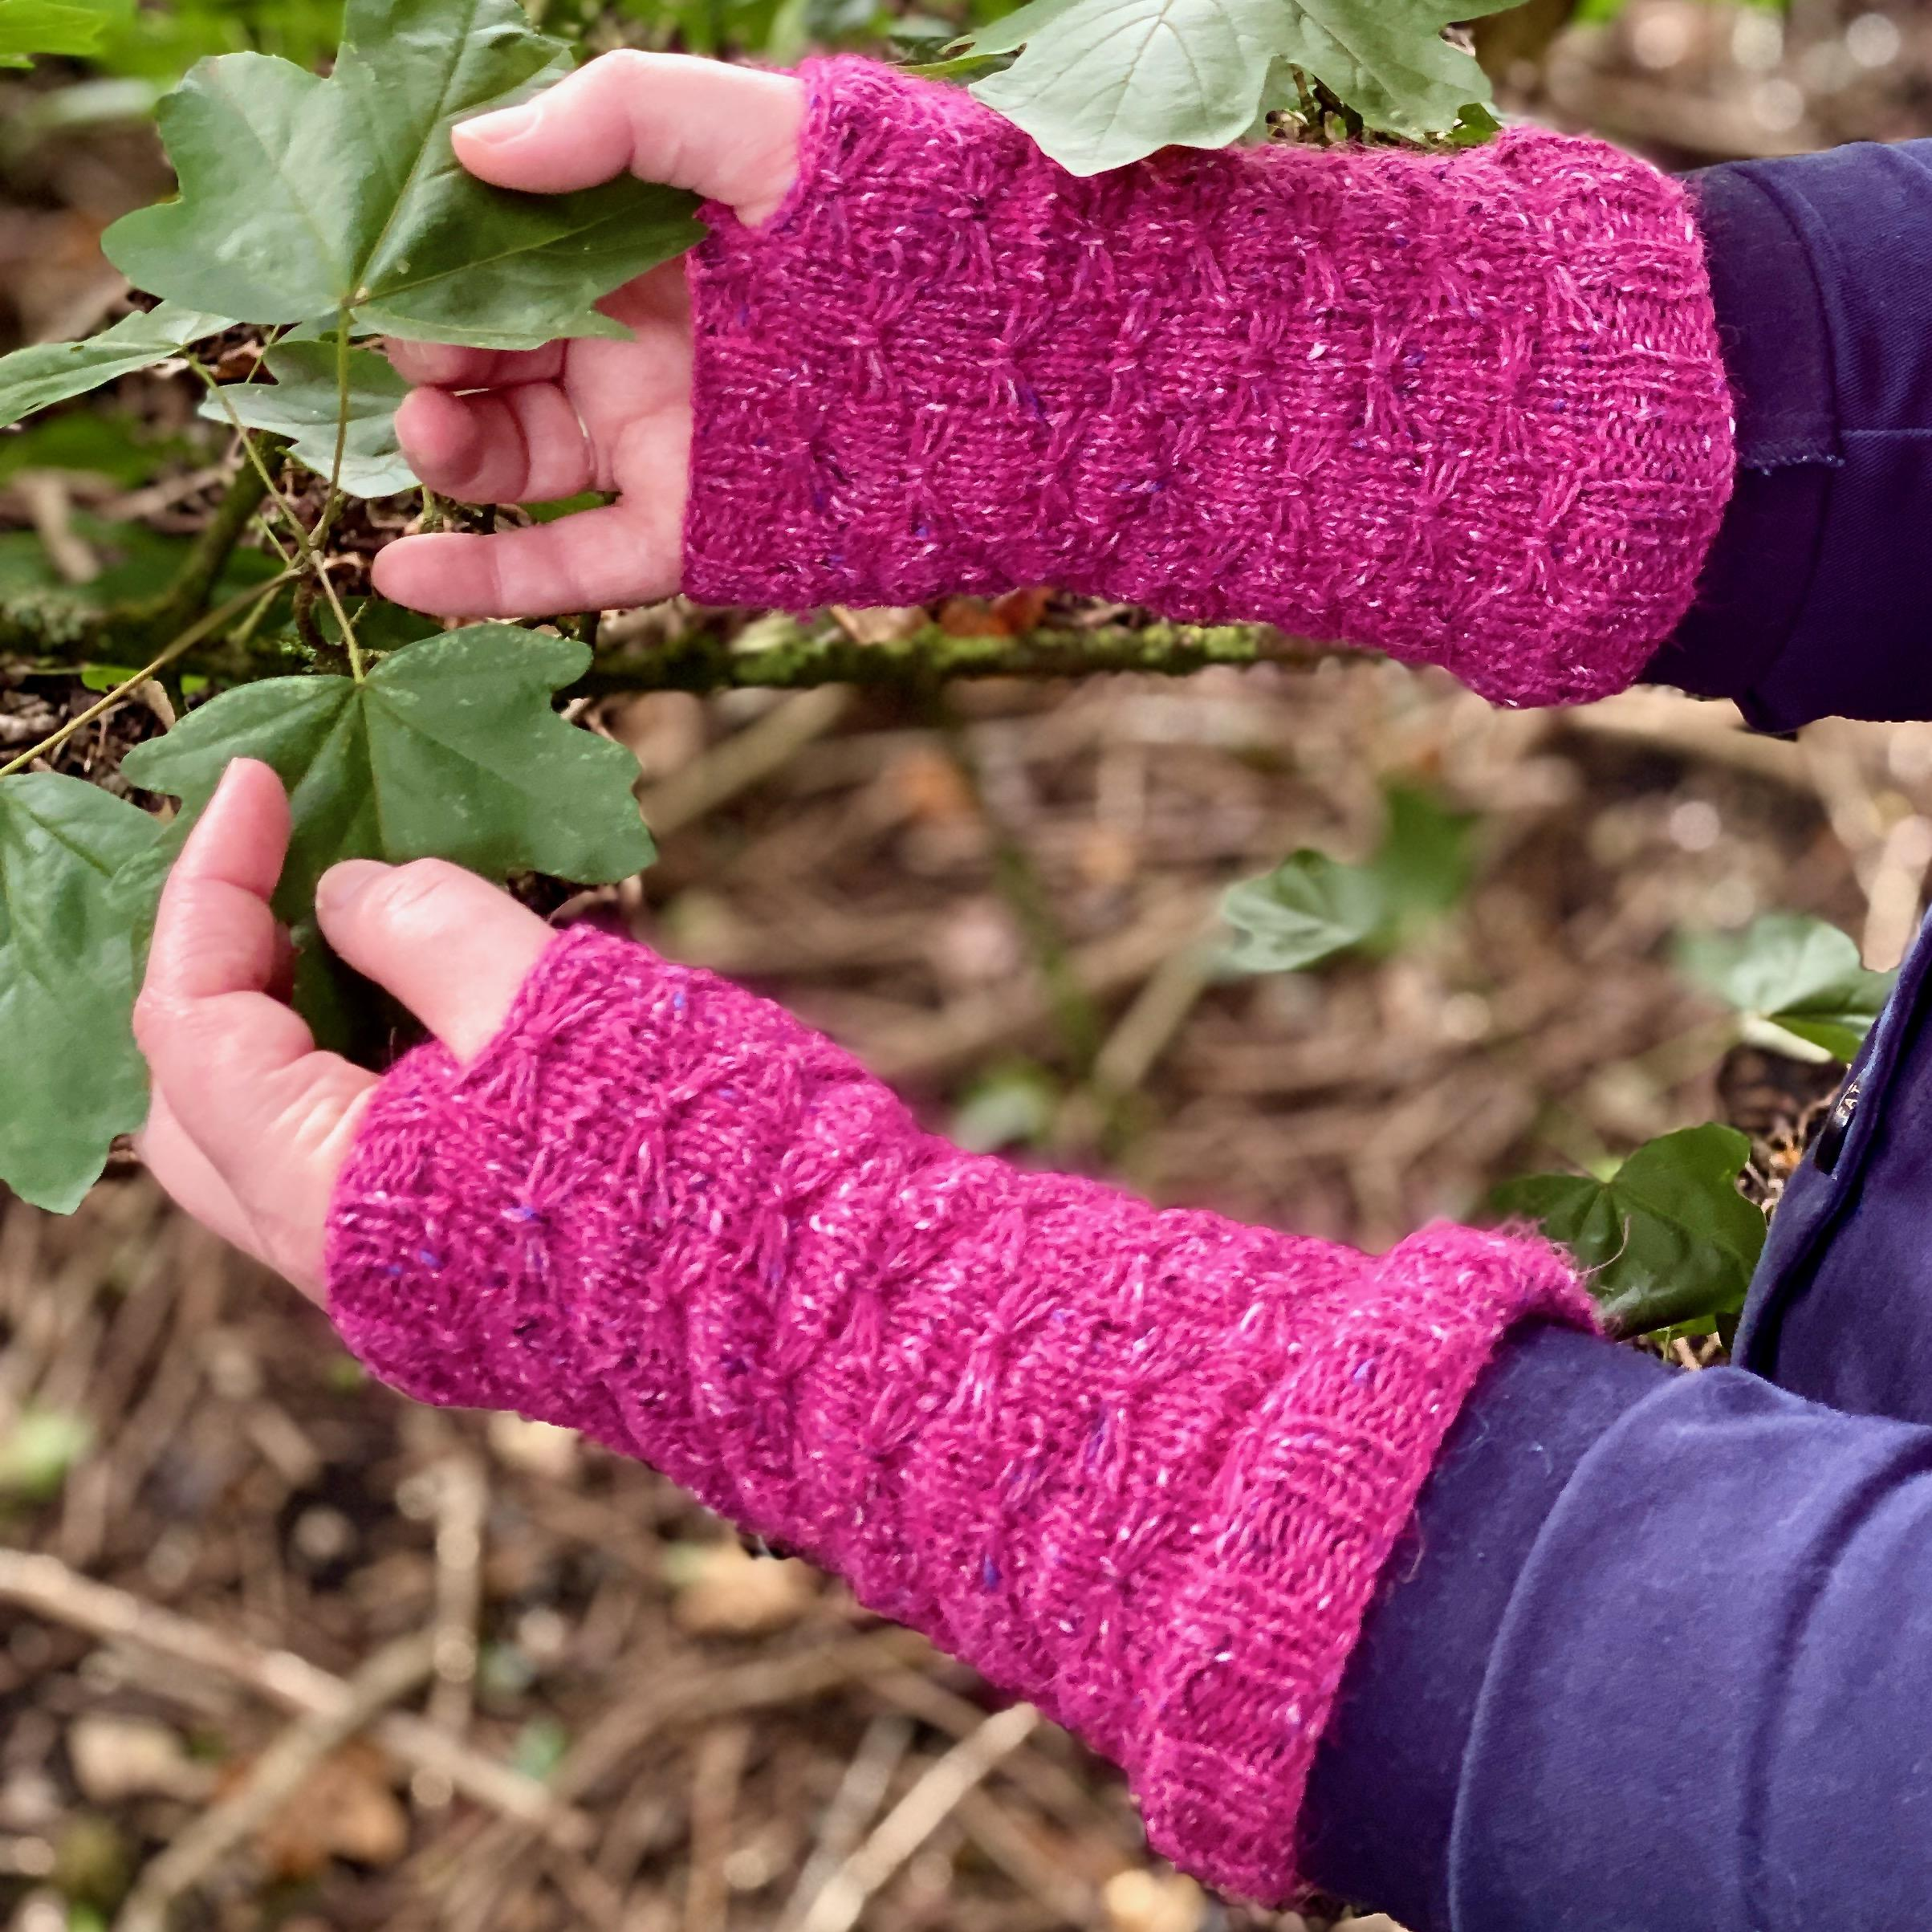 hands wearing pink knitted cuffs holding leaves on branch